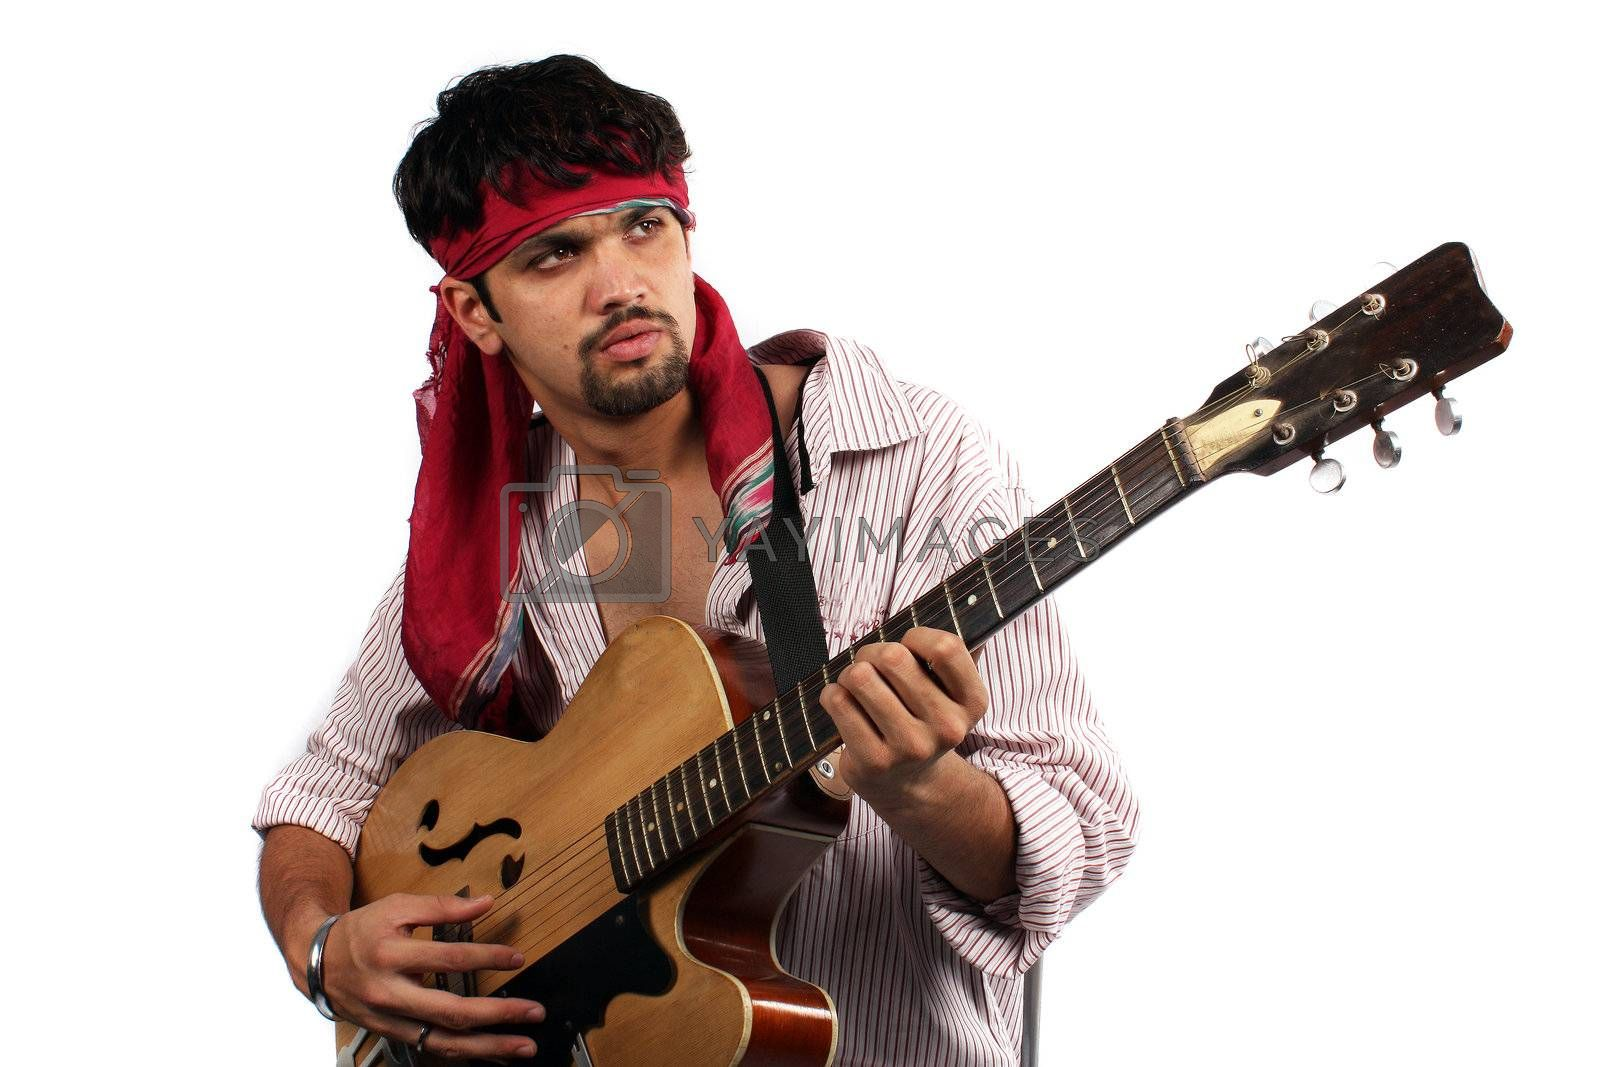 Royalty free image of Stylish Indian Guitarist by thefinalmiracle